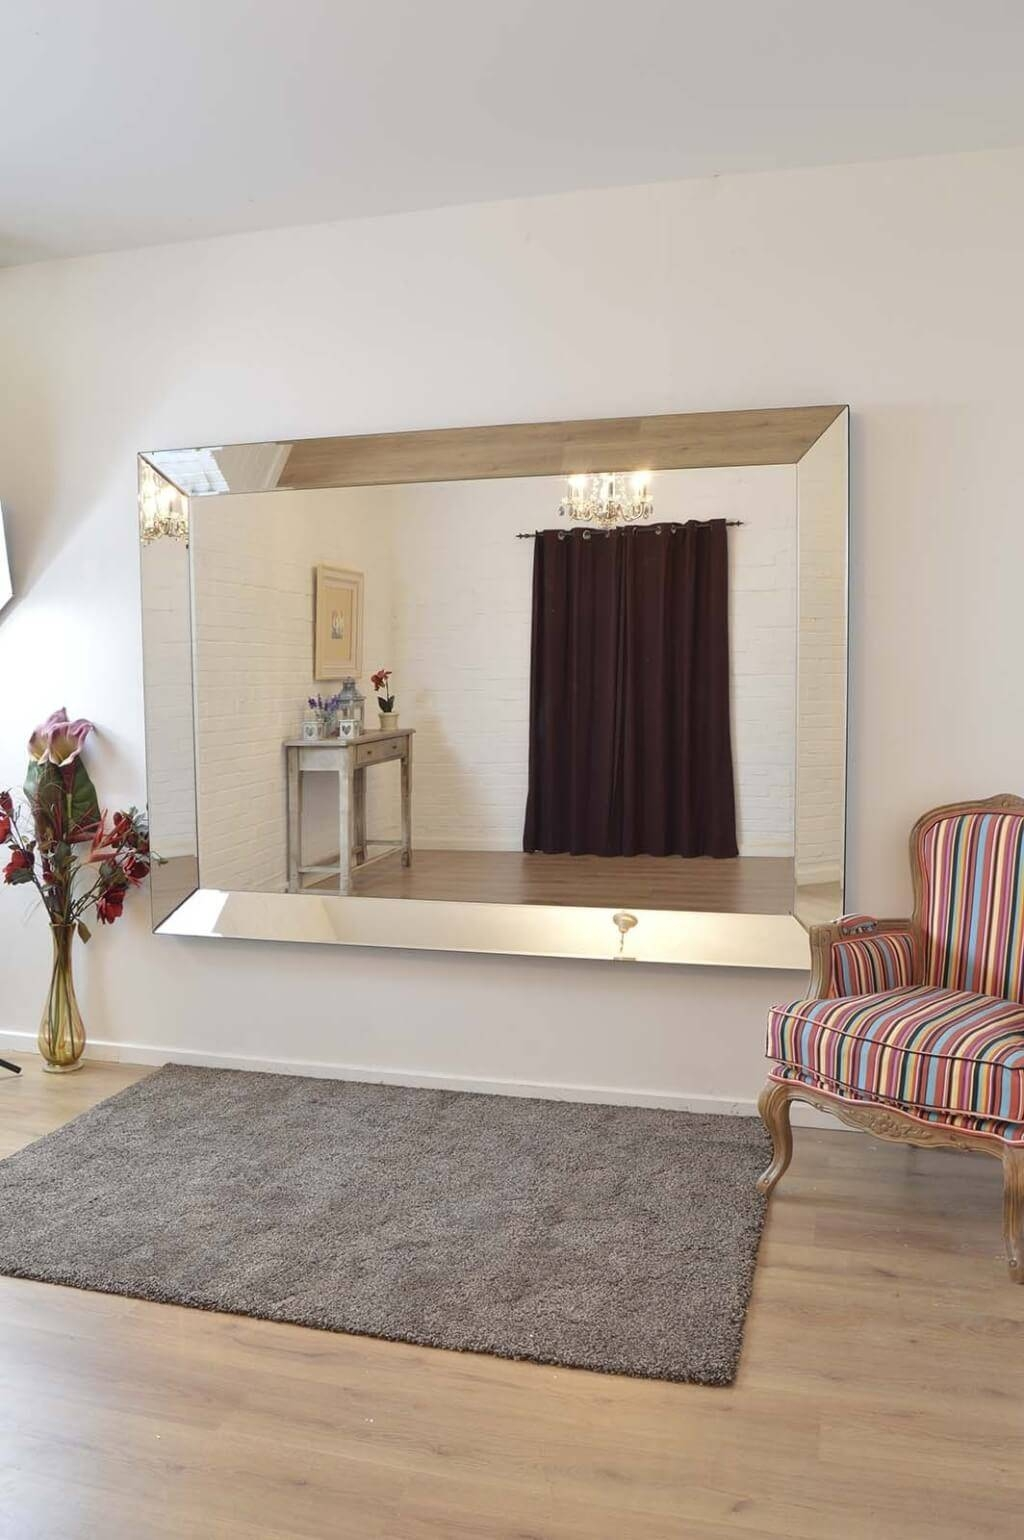 Ideas : Wondrous Living Decorating Mirror For Living Room Modern with regard to Large Frameless Wall Mirrors (Image 8 of 25)